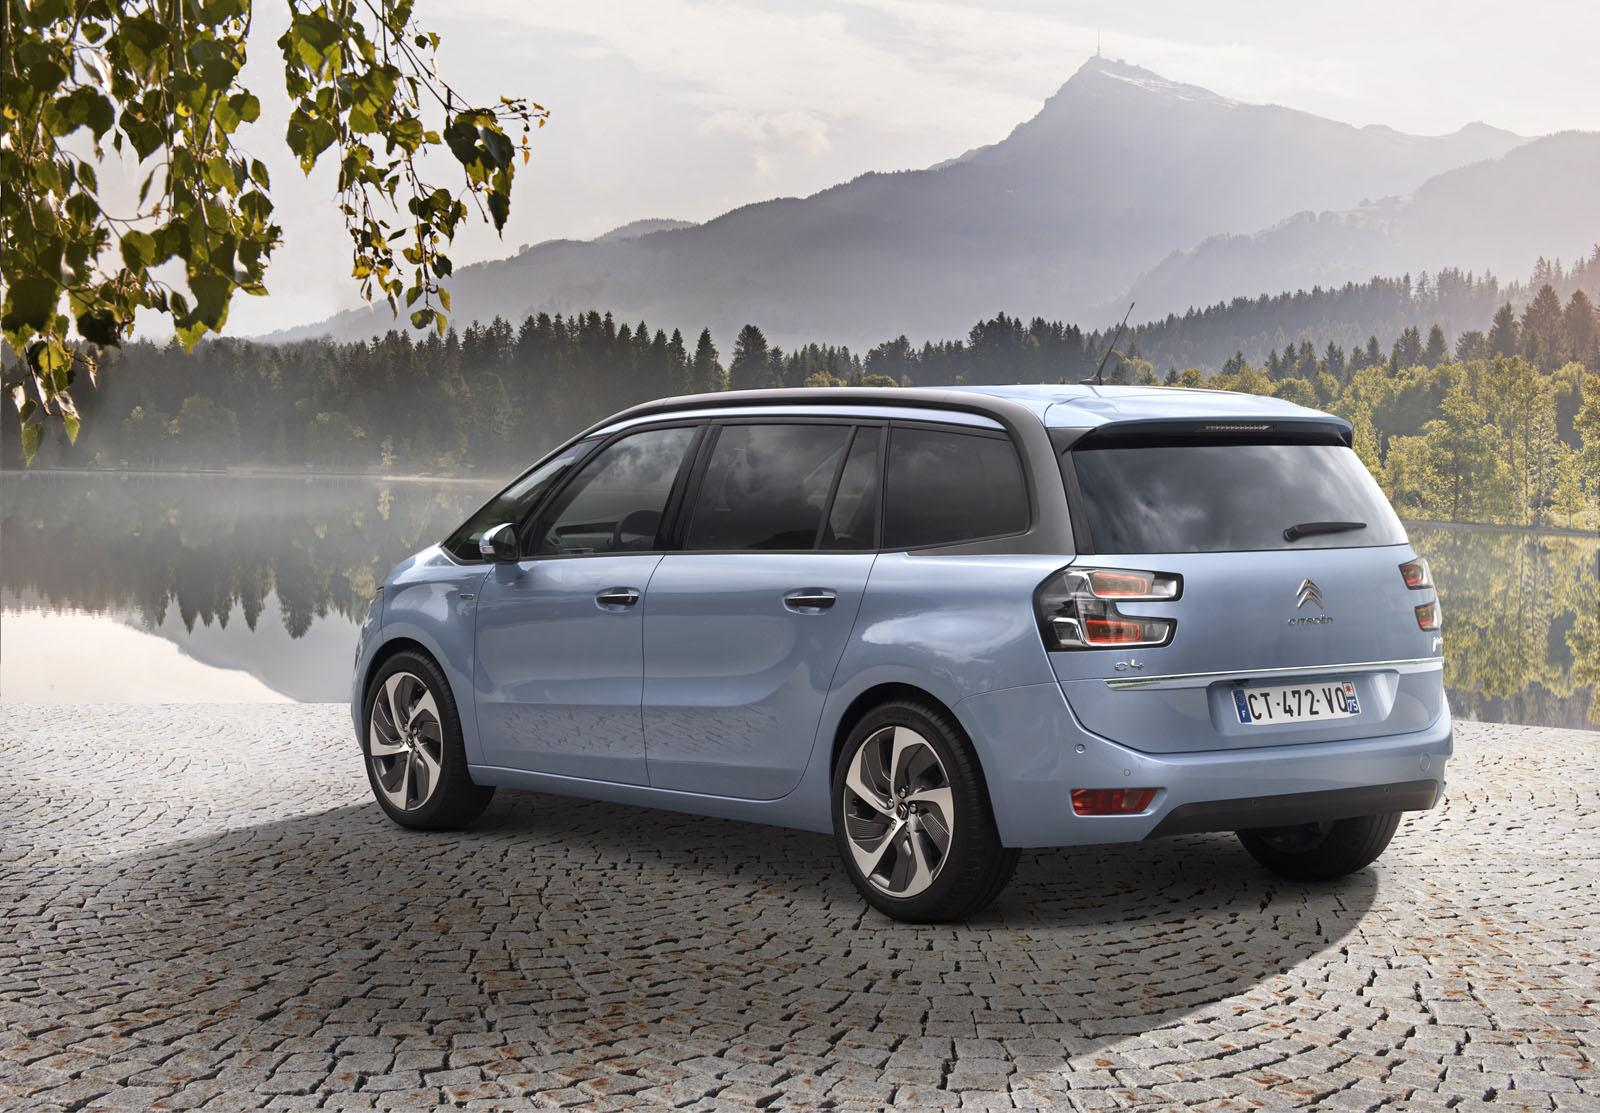 2014 citroen grand c4 picasso unveiled video photo gallery autoevolution. Black Bedroom Furniture Sets. Home Design Ideas